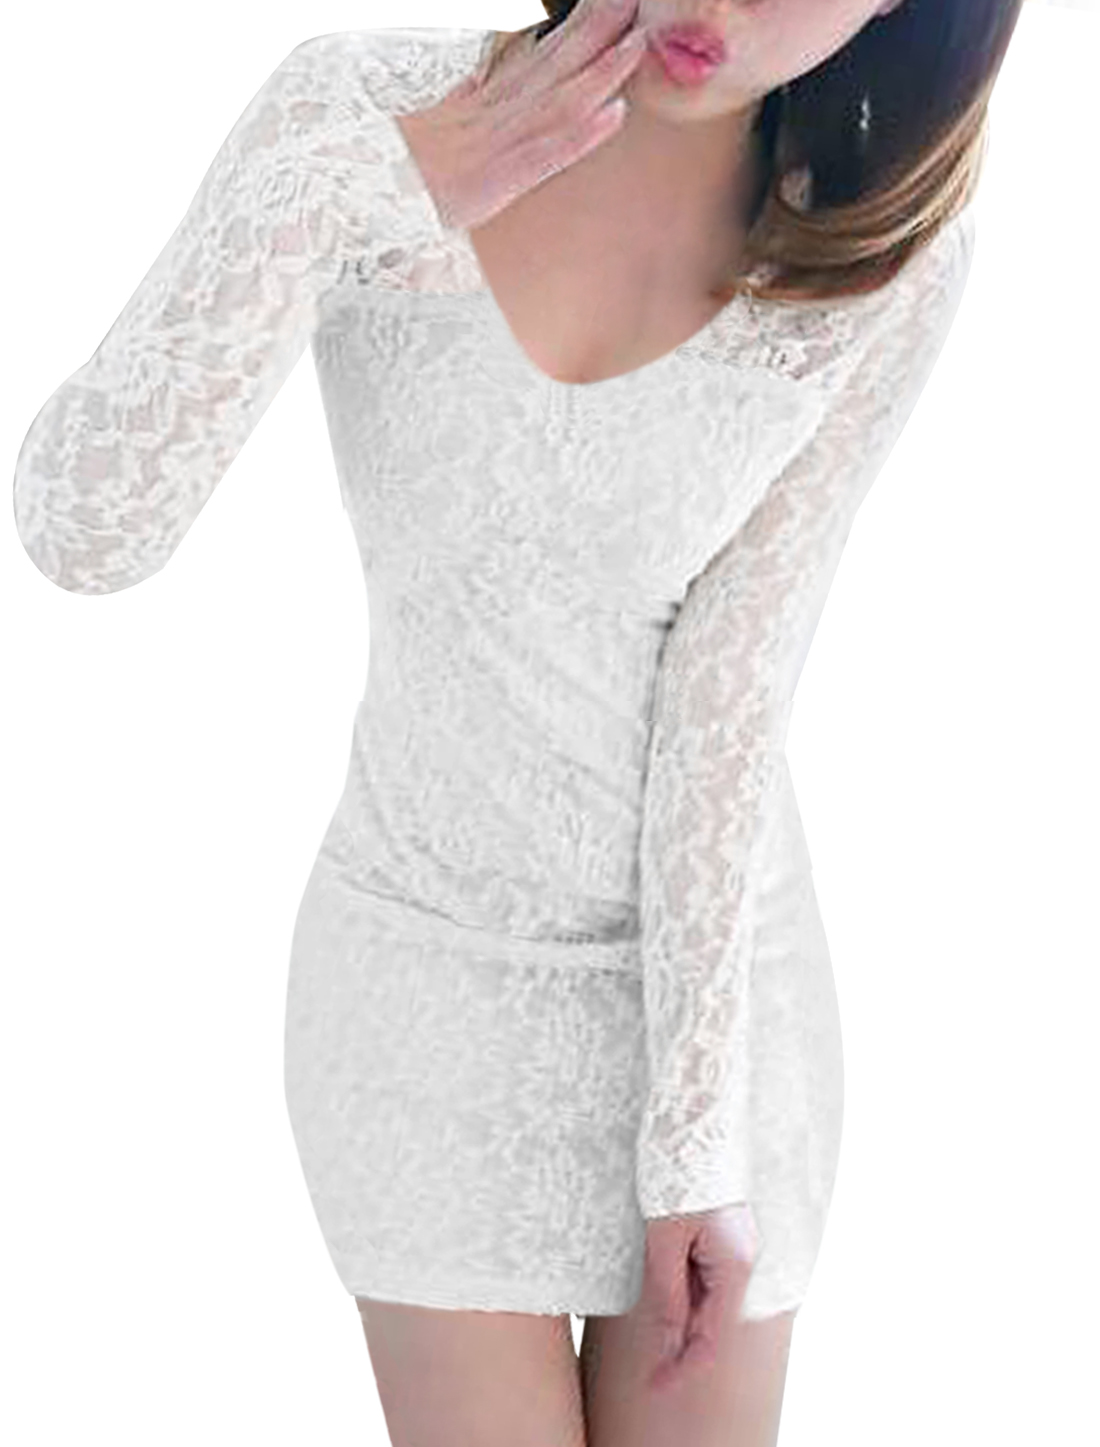 Slipover Pure White Color Crochet Lace Design Mini Dress for Lady XL